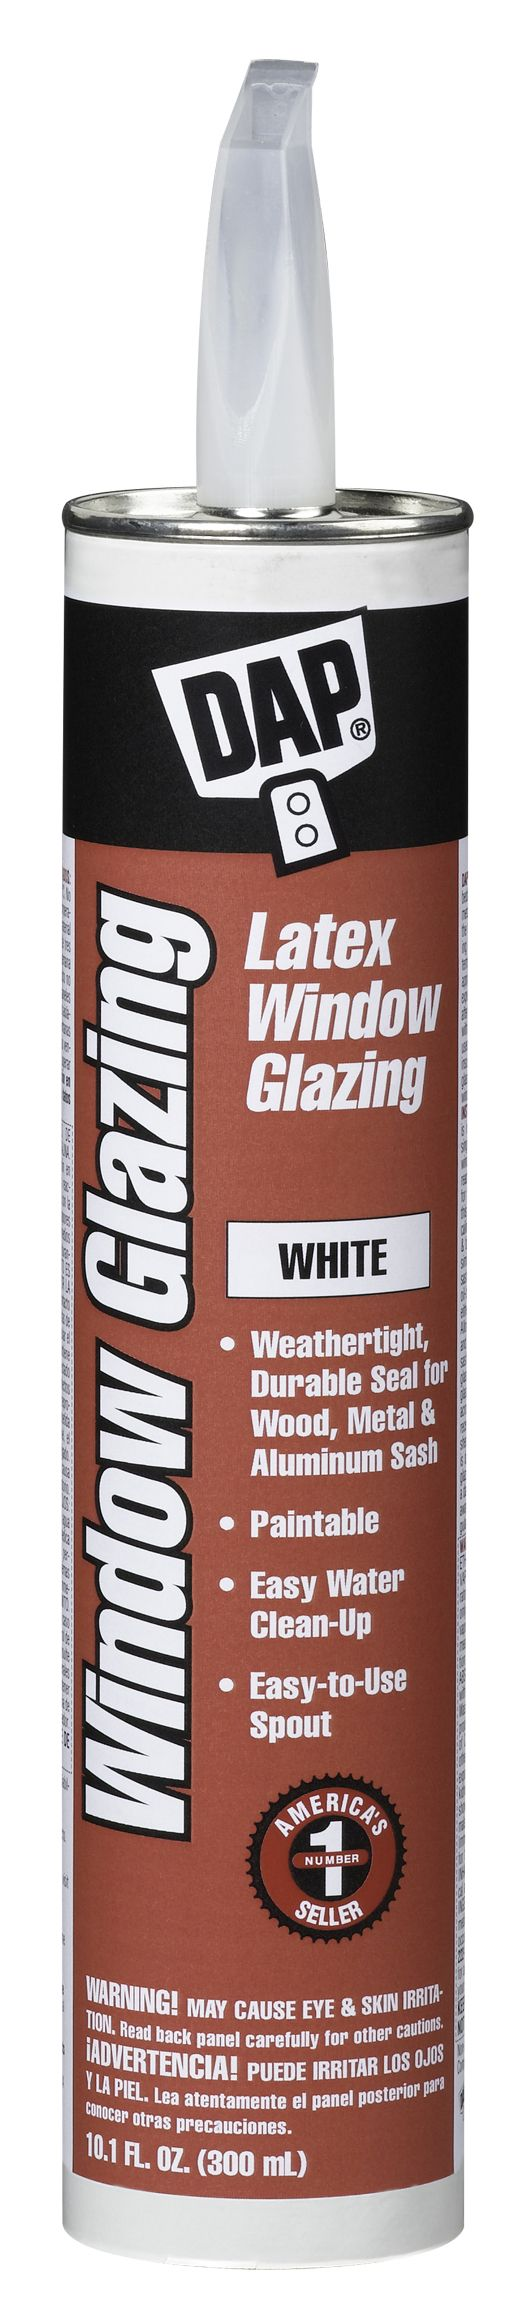 Can you glaze windows proficiently? - Page 2 - Paint Talk - Professional Painting Contractors Forum